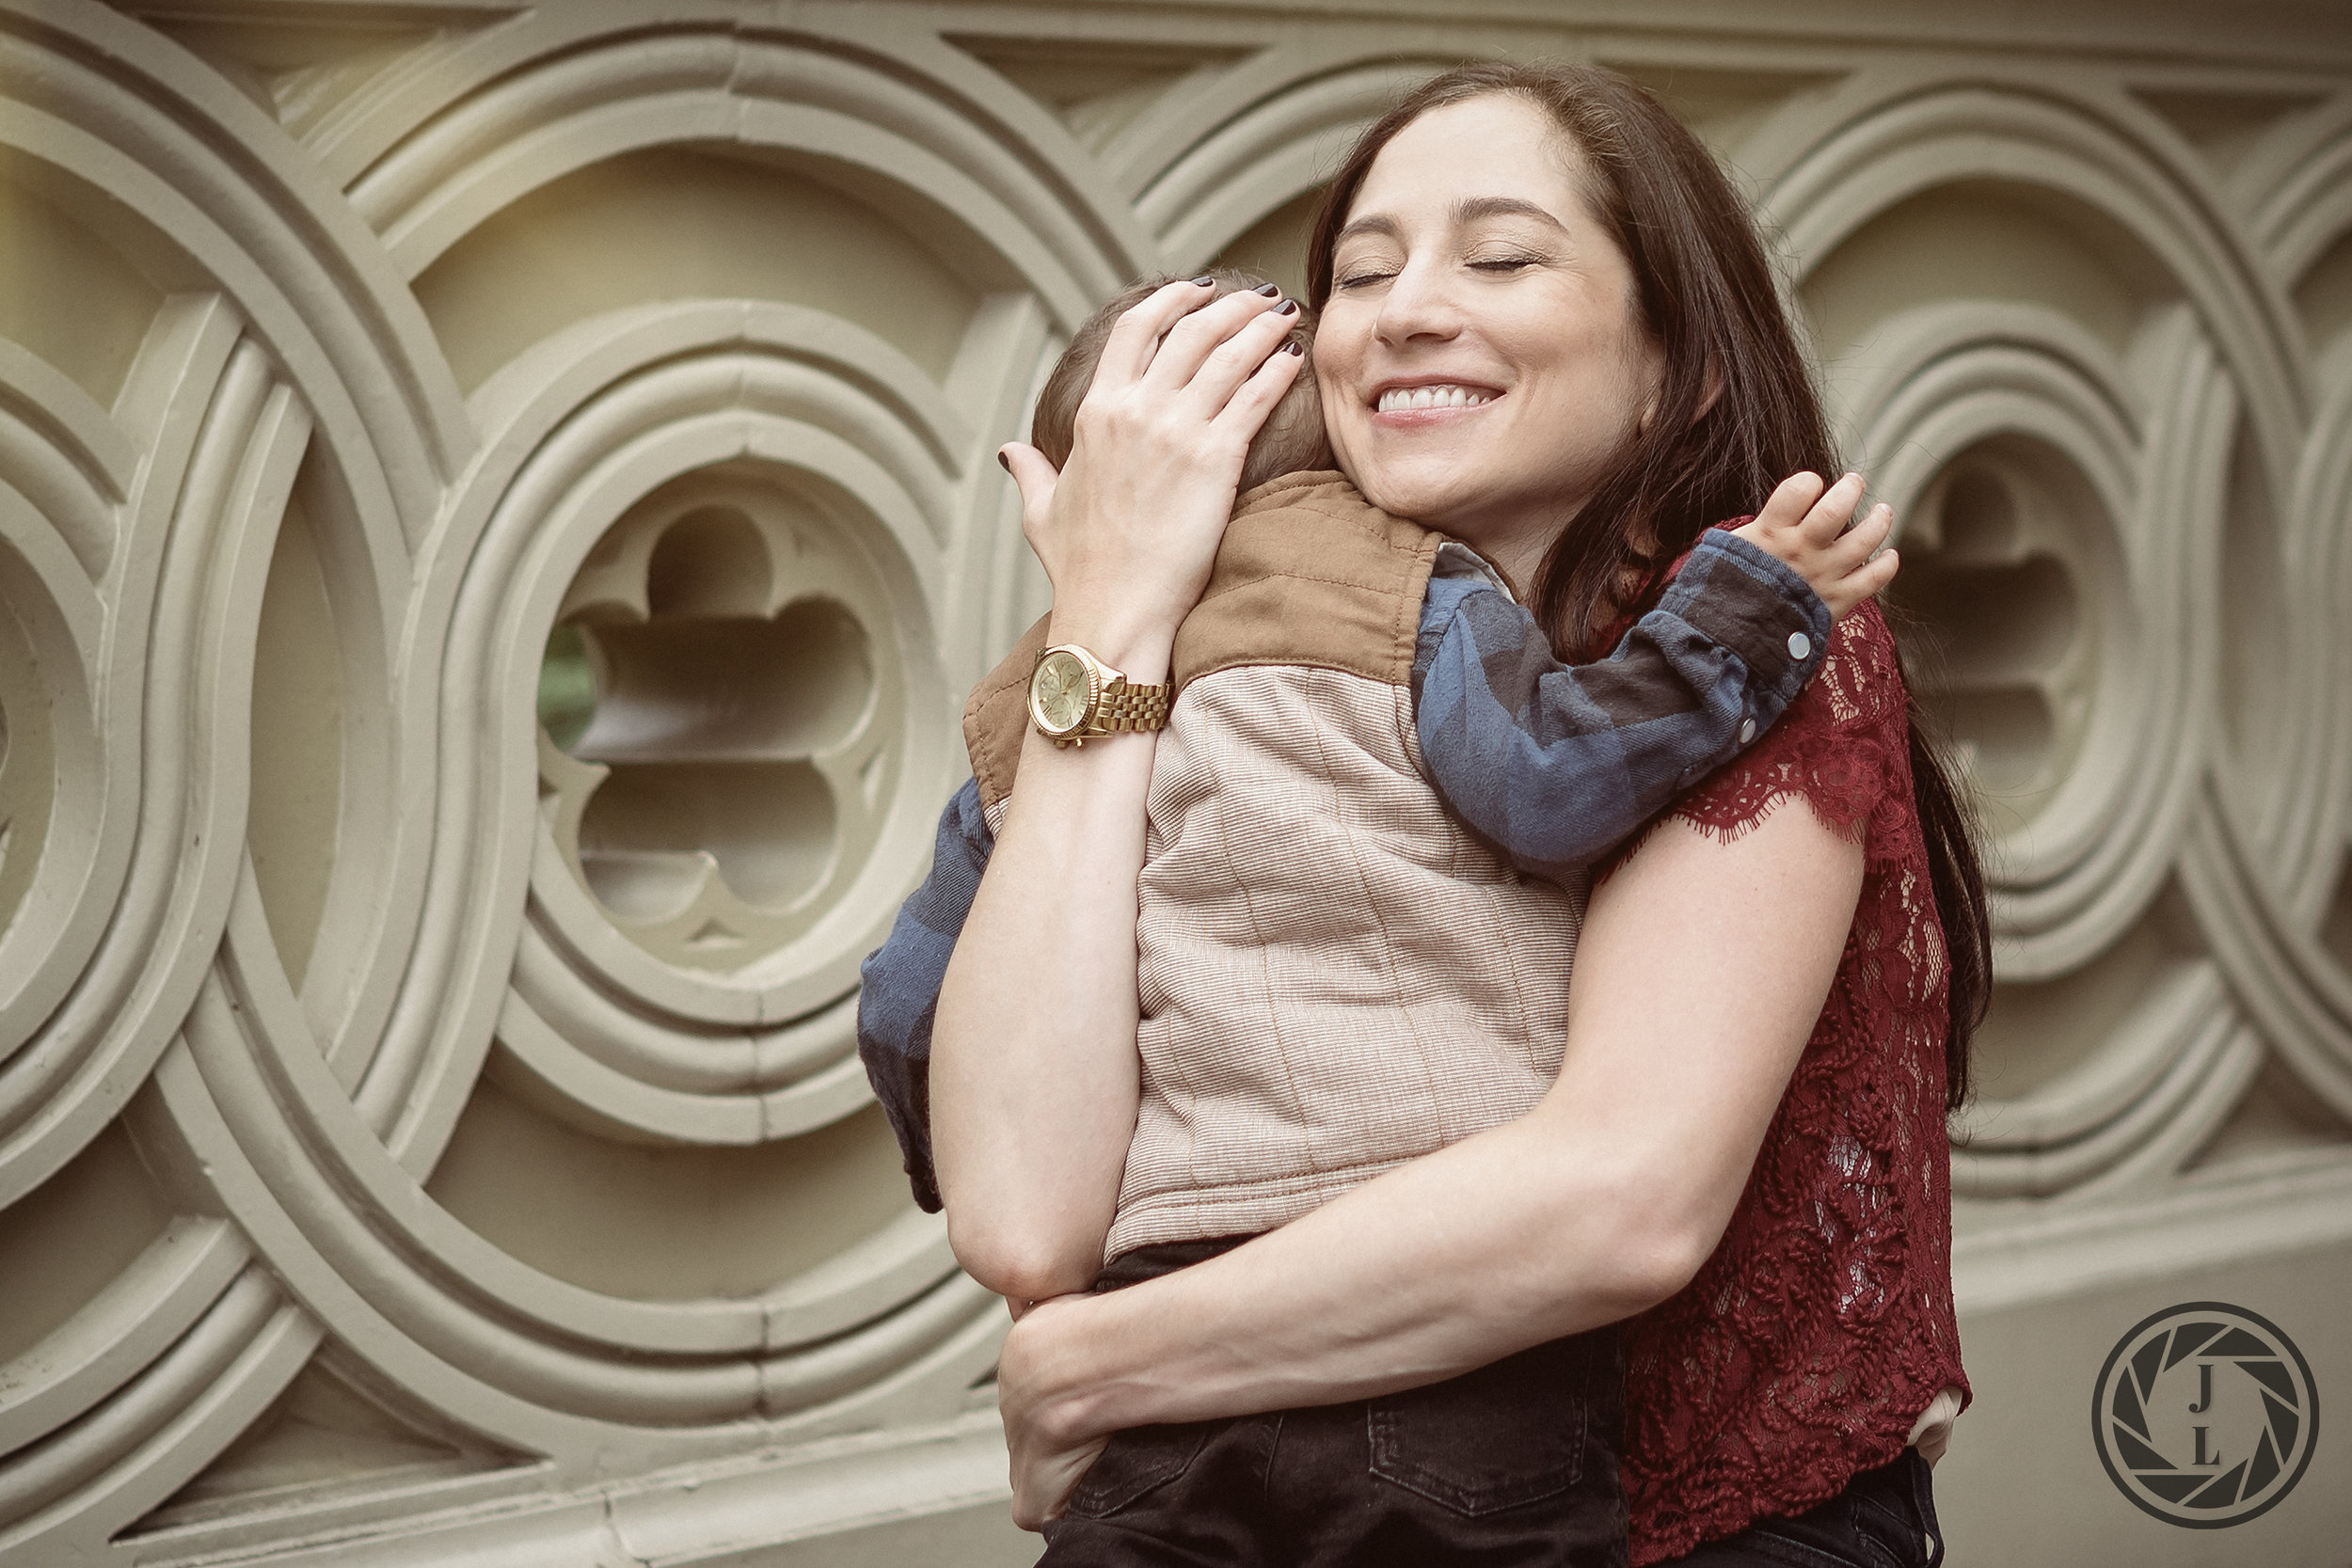 A mother embracing her son and smiling with her eyes closed